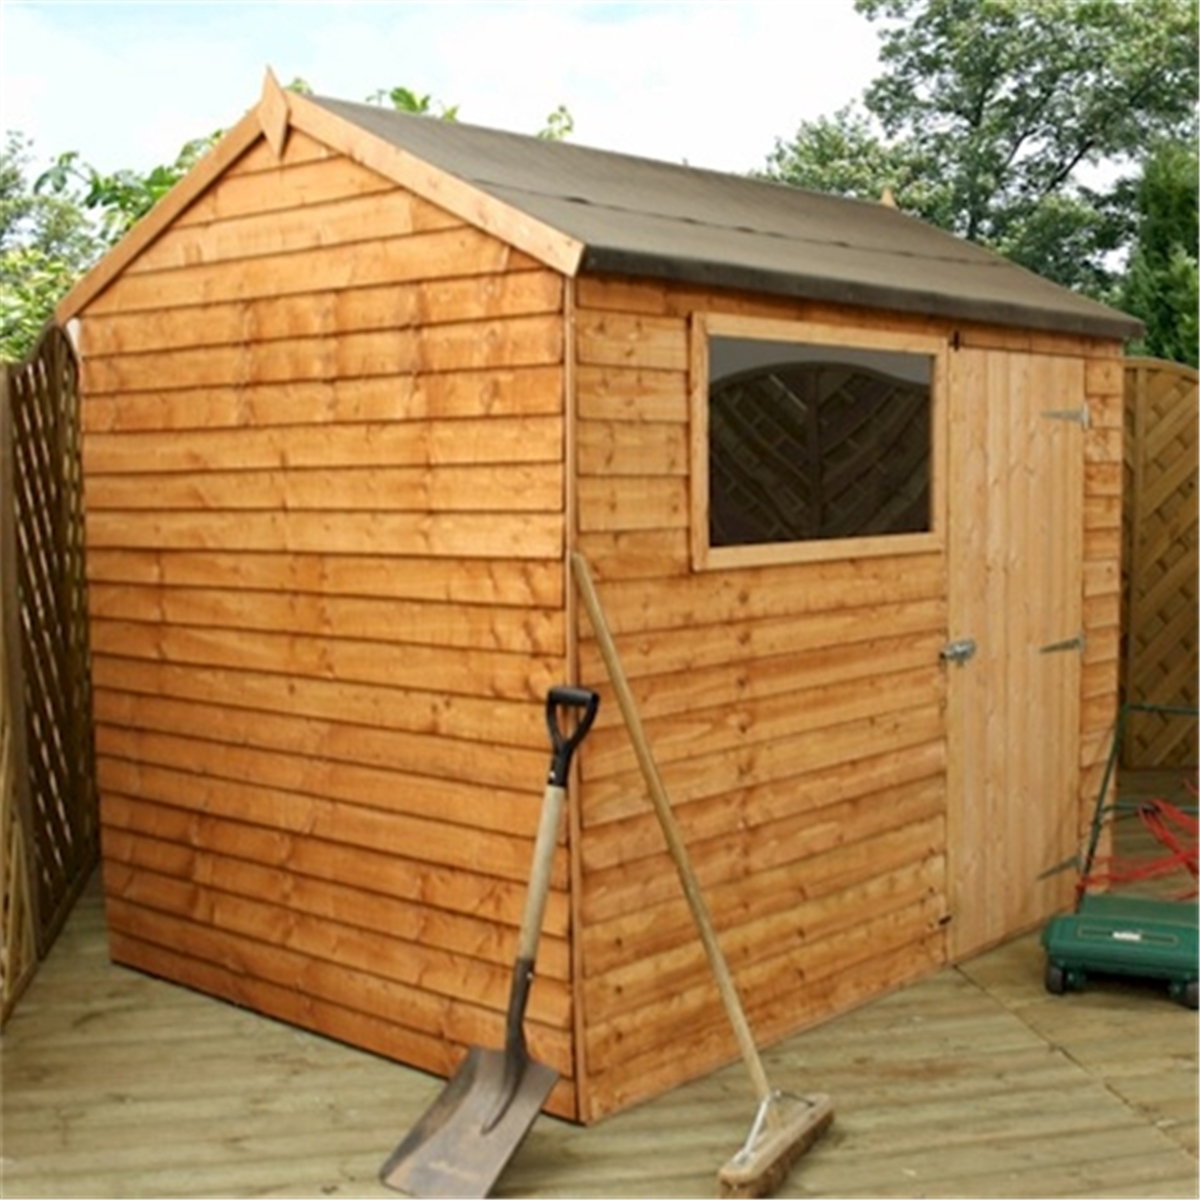 6 x 8 reverse overlap apex shed with single door 1 for Garden shed ideas uk